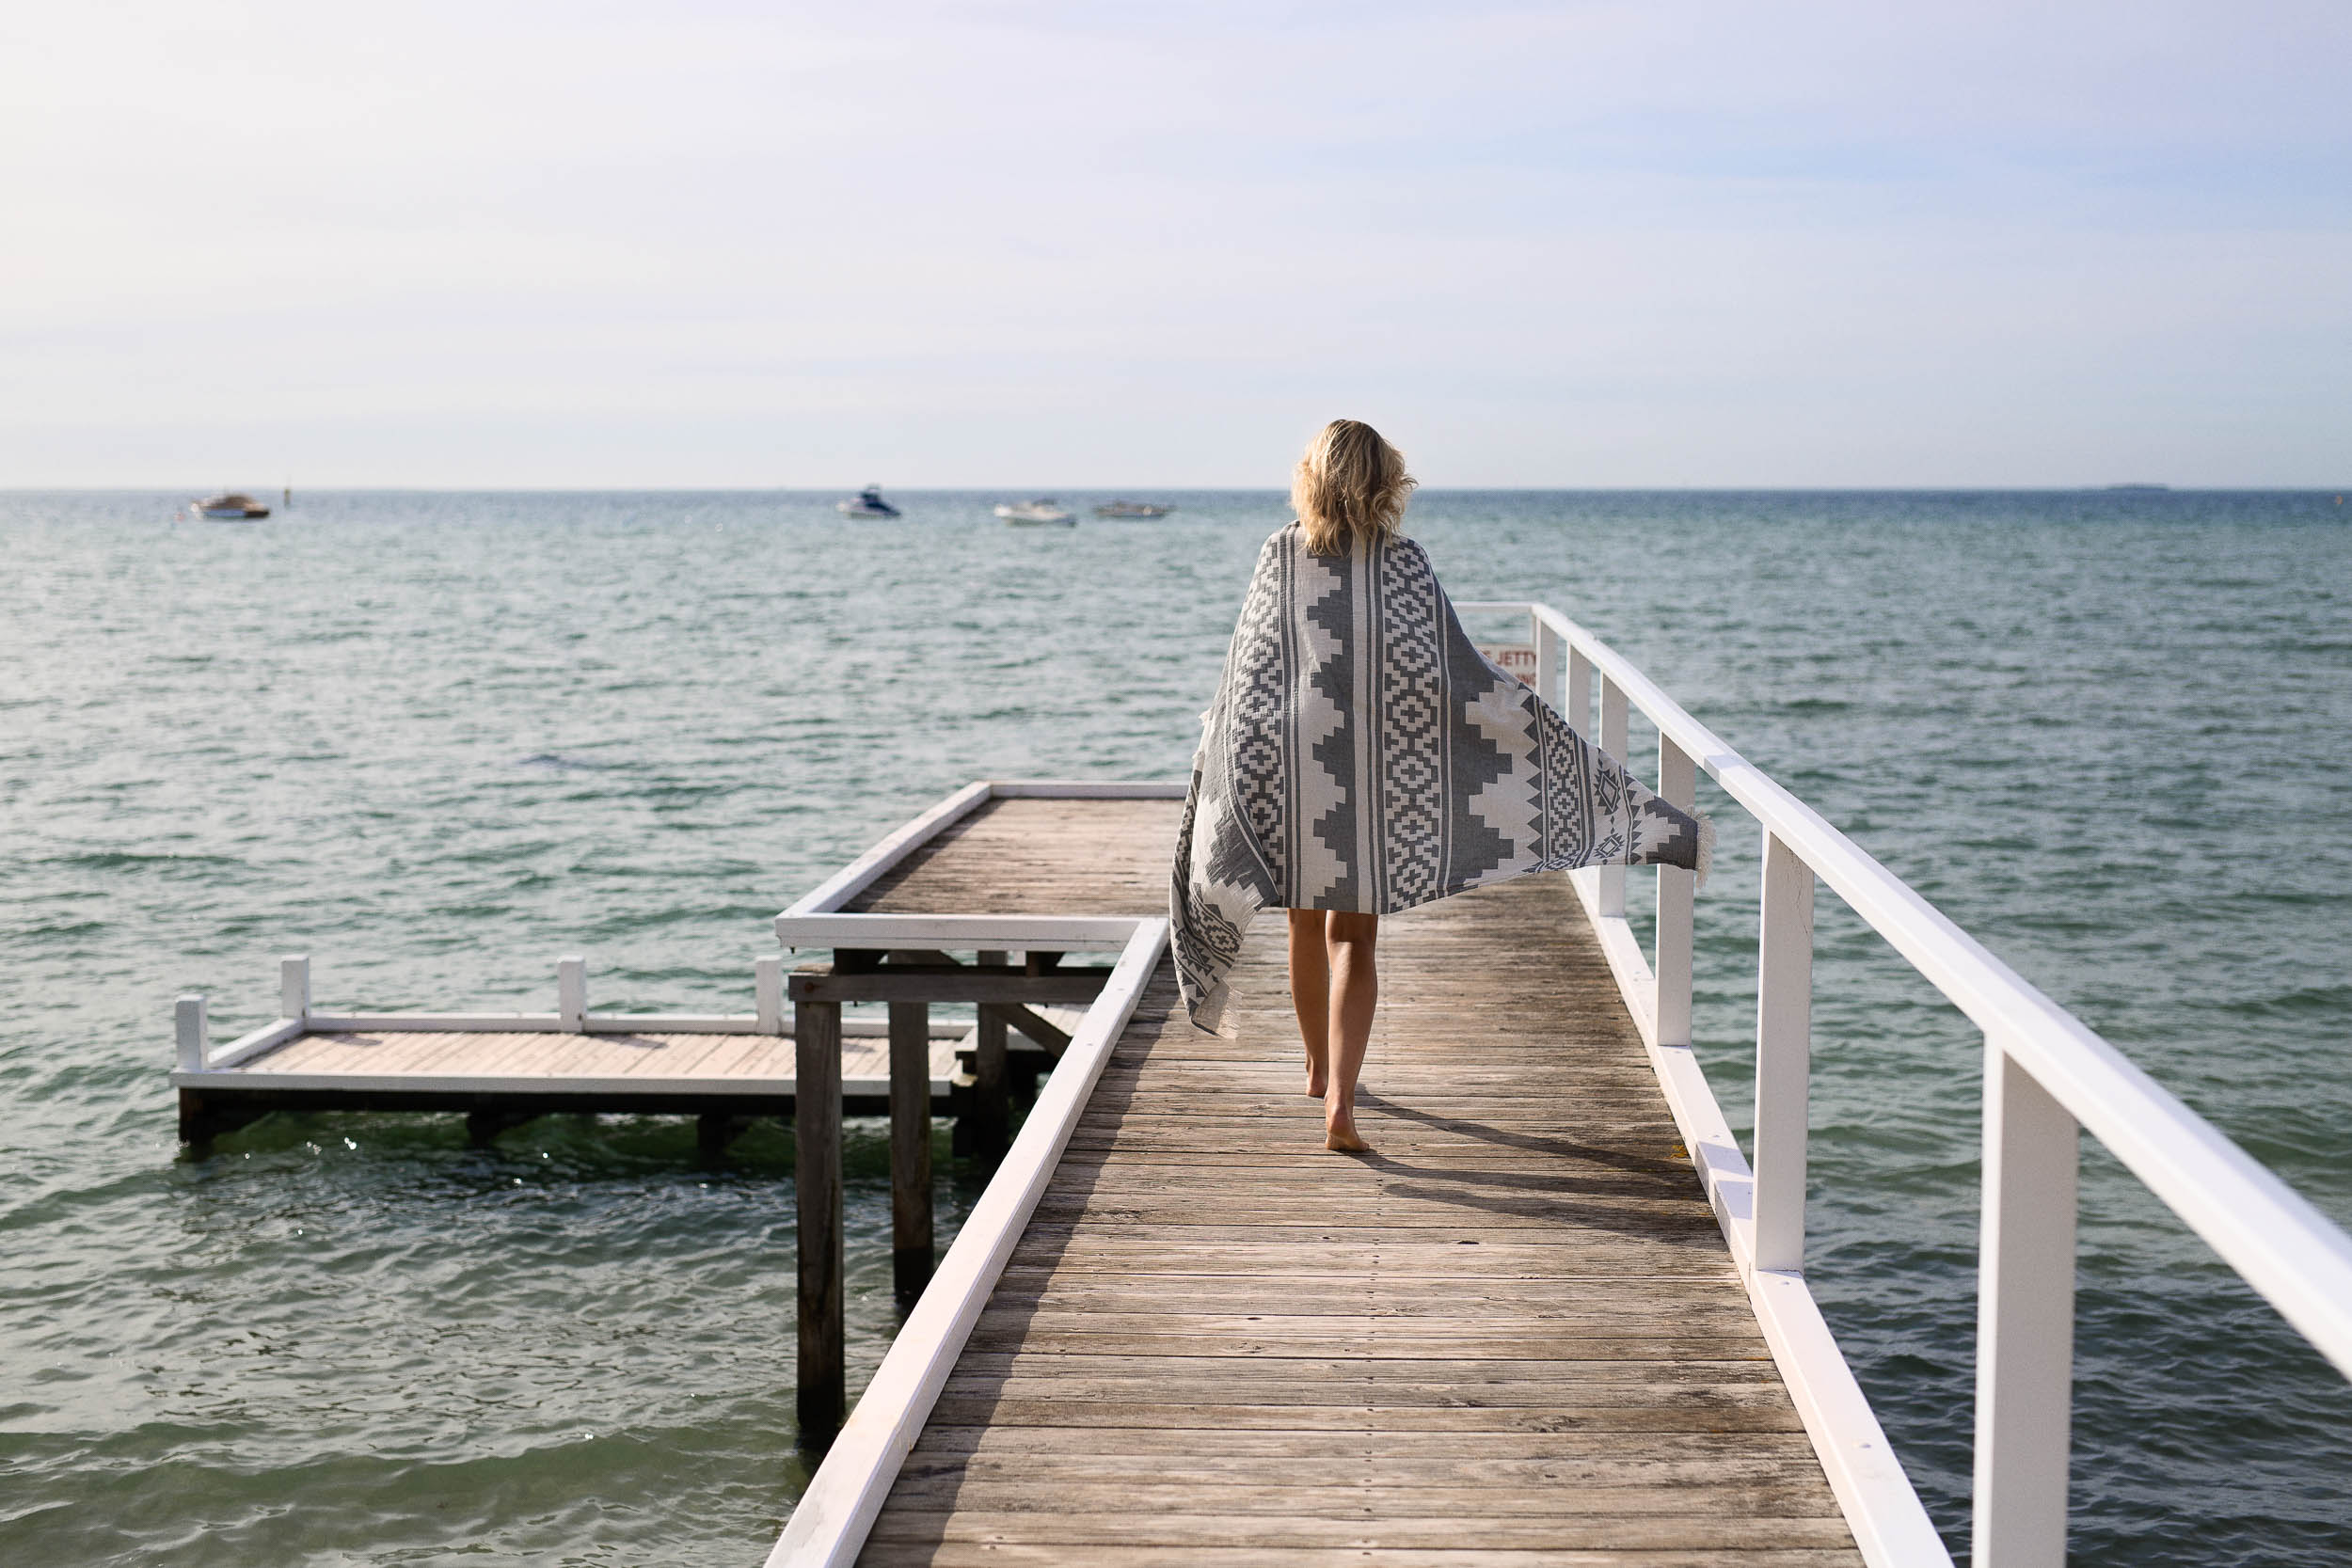 Lookbook photography for Knotty Towels shot by Nick Walters in Sorrento1.jpg